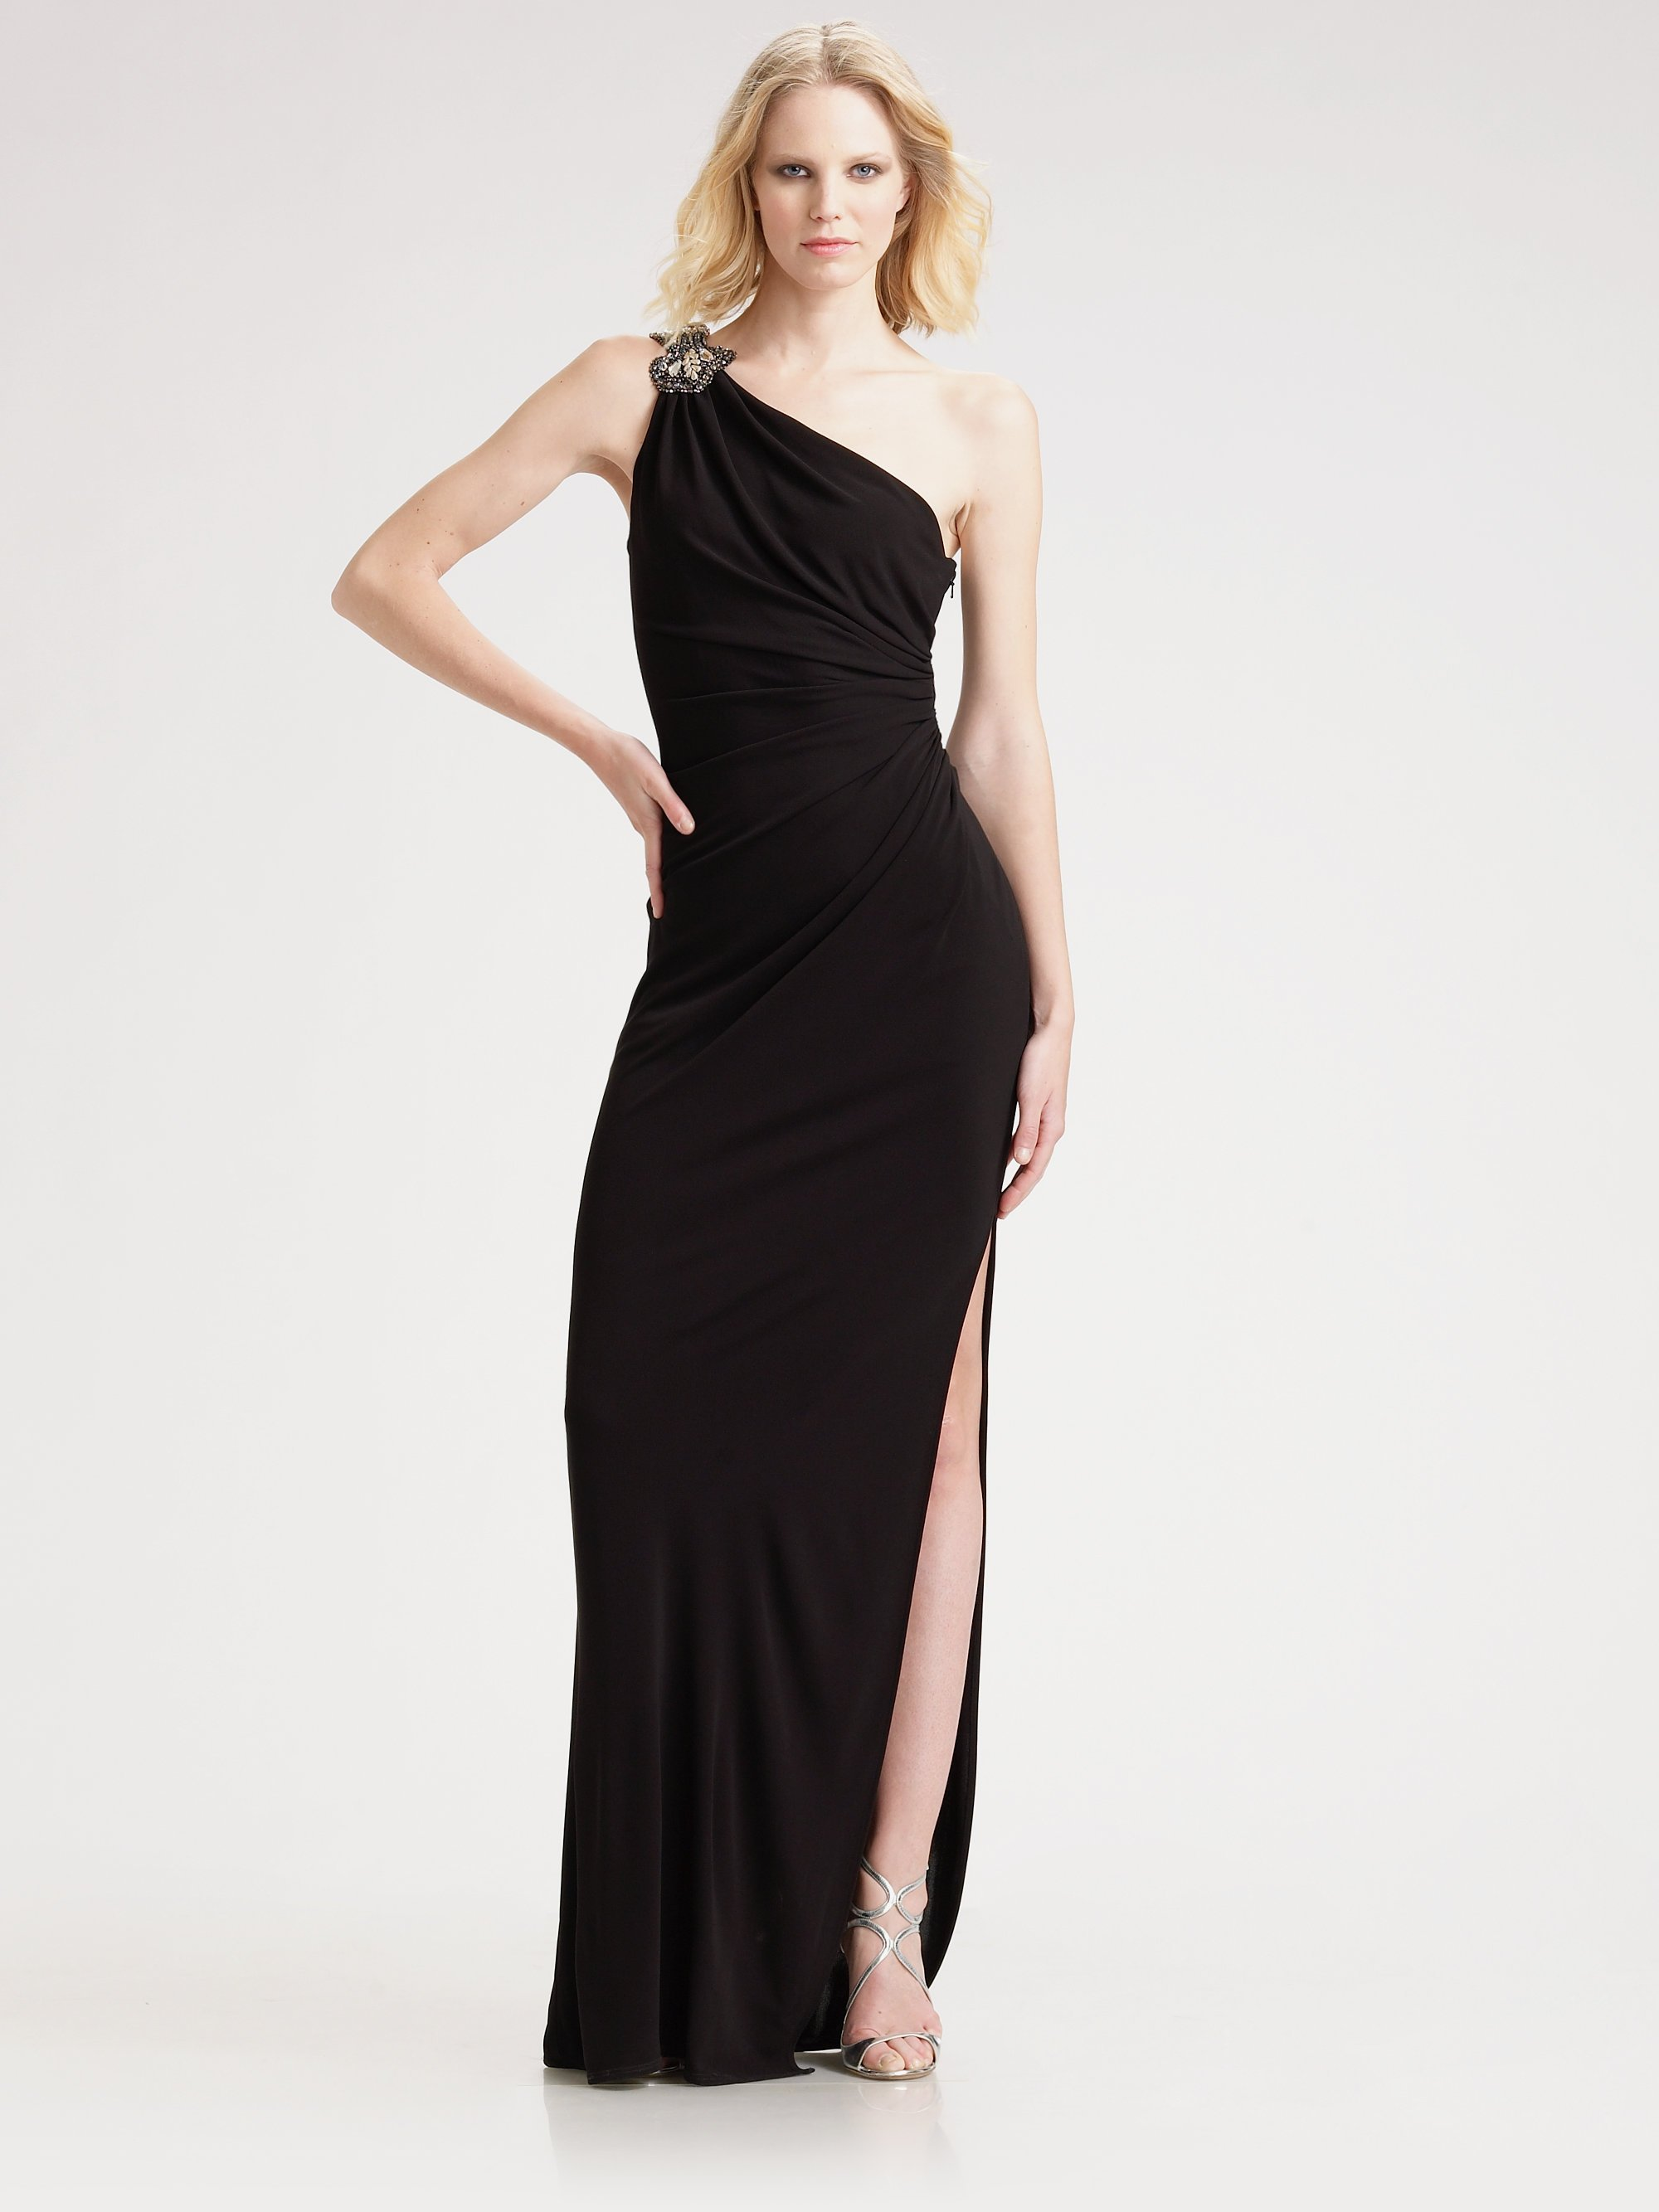 Lyst - David Meister One Shoulder Ruched Gown in Black